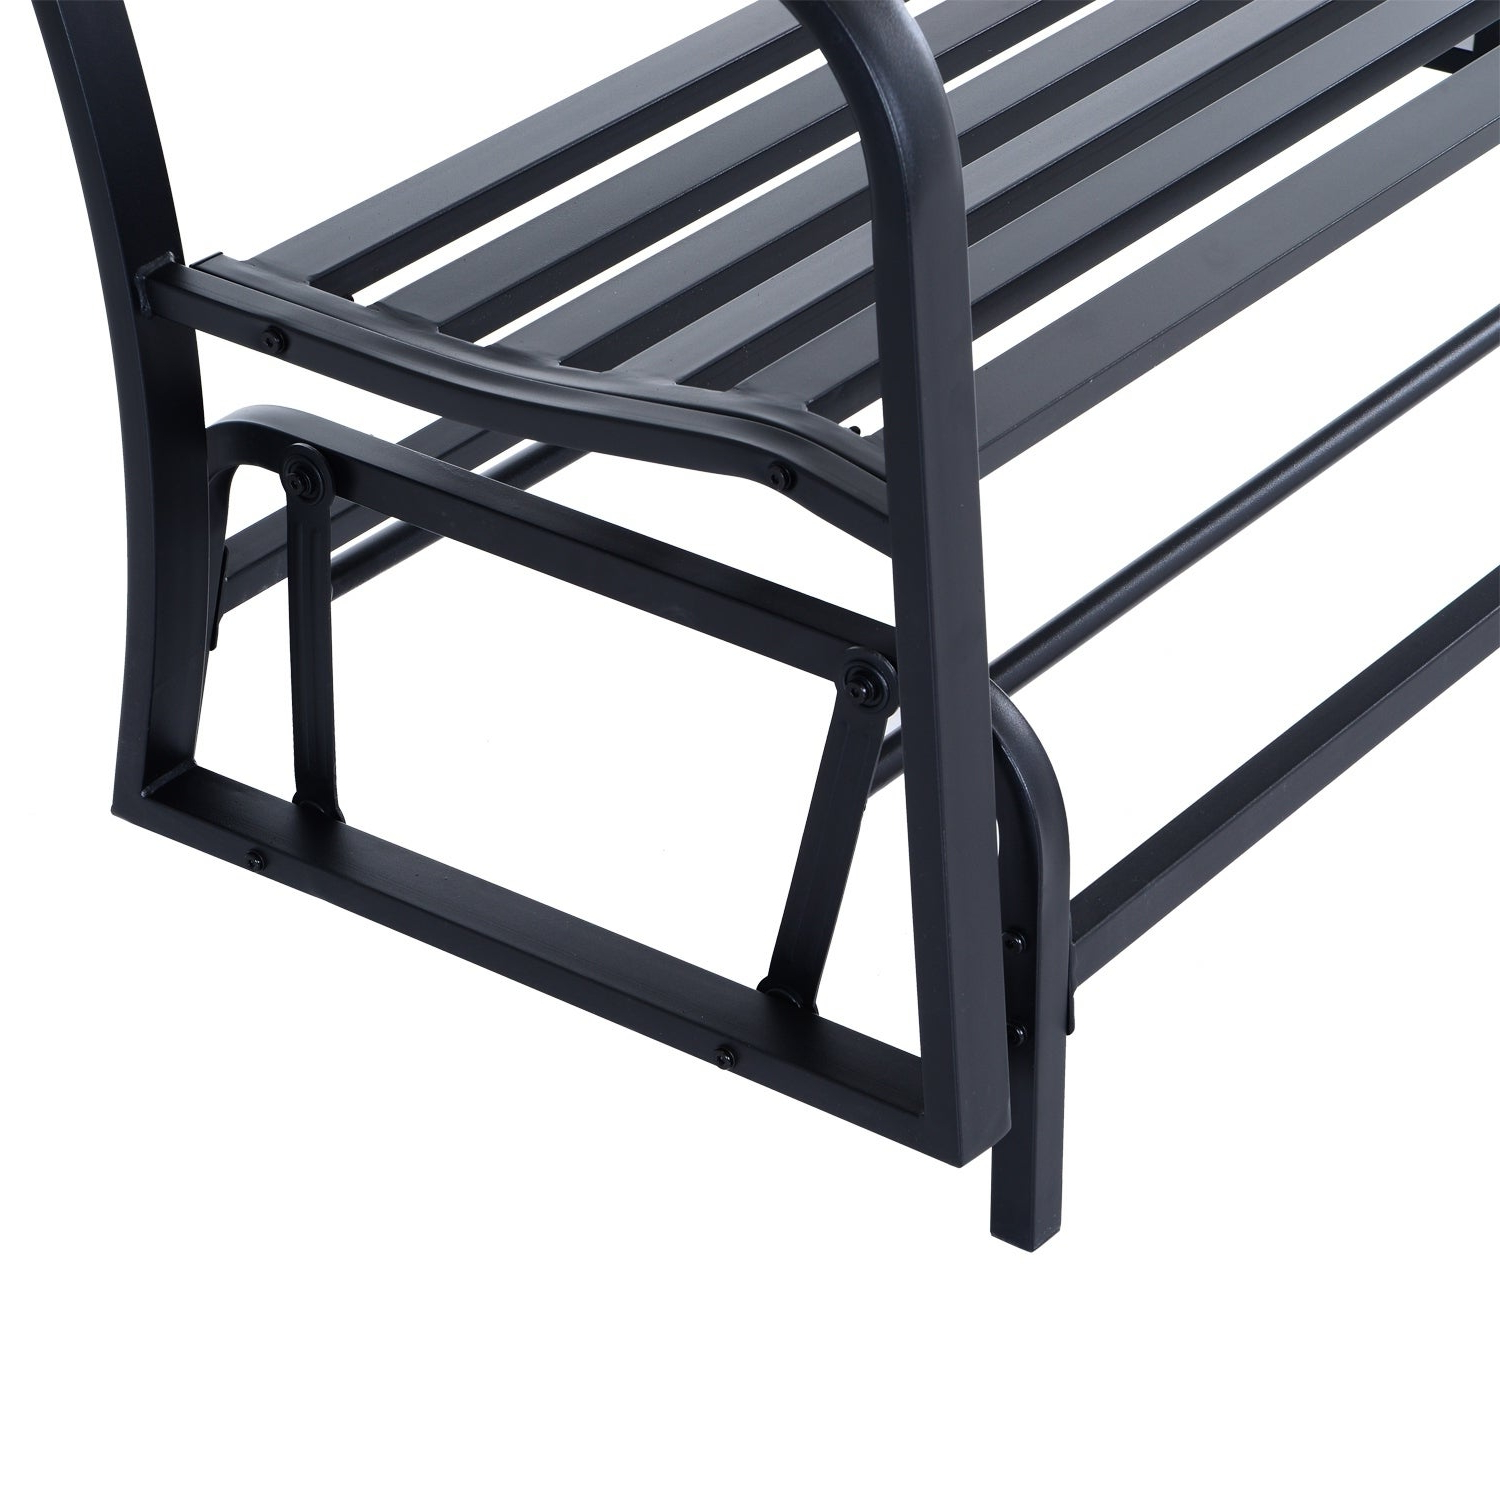 Black Steel Patio Swing Glider Benches Powder Coated Pertaining To Trendy Outsunny 50 Inch Outdoor Steel Patio Swing Glider Bench – Black (View 11 of 25)